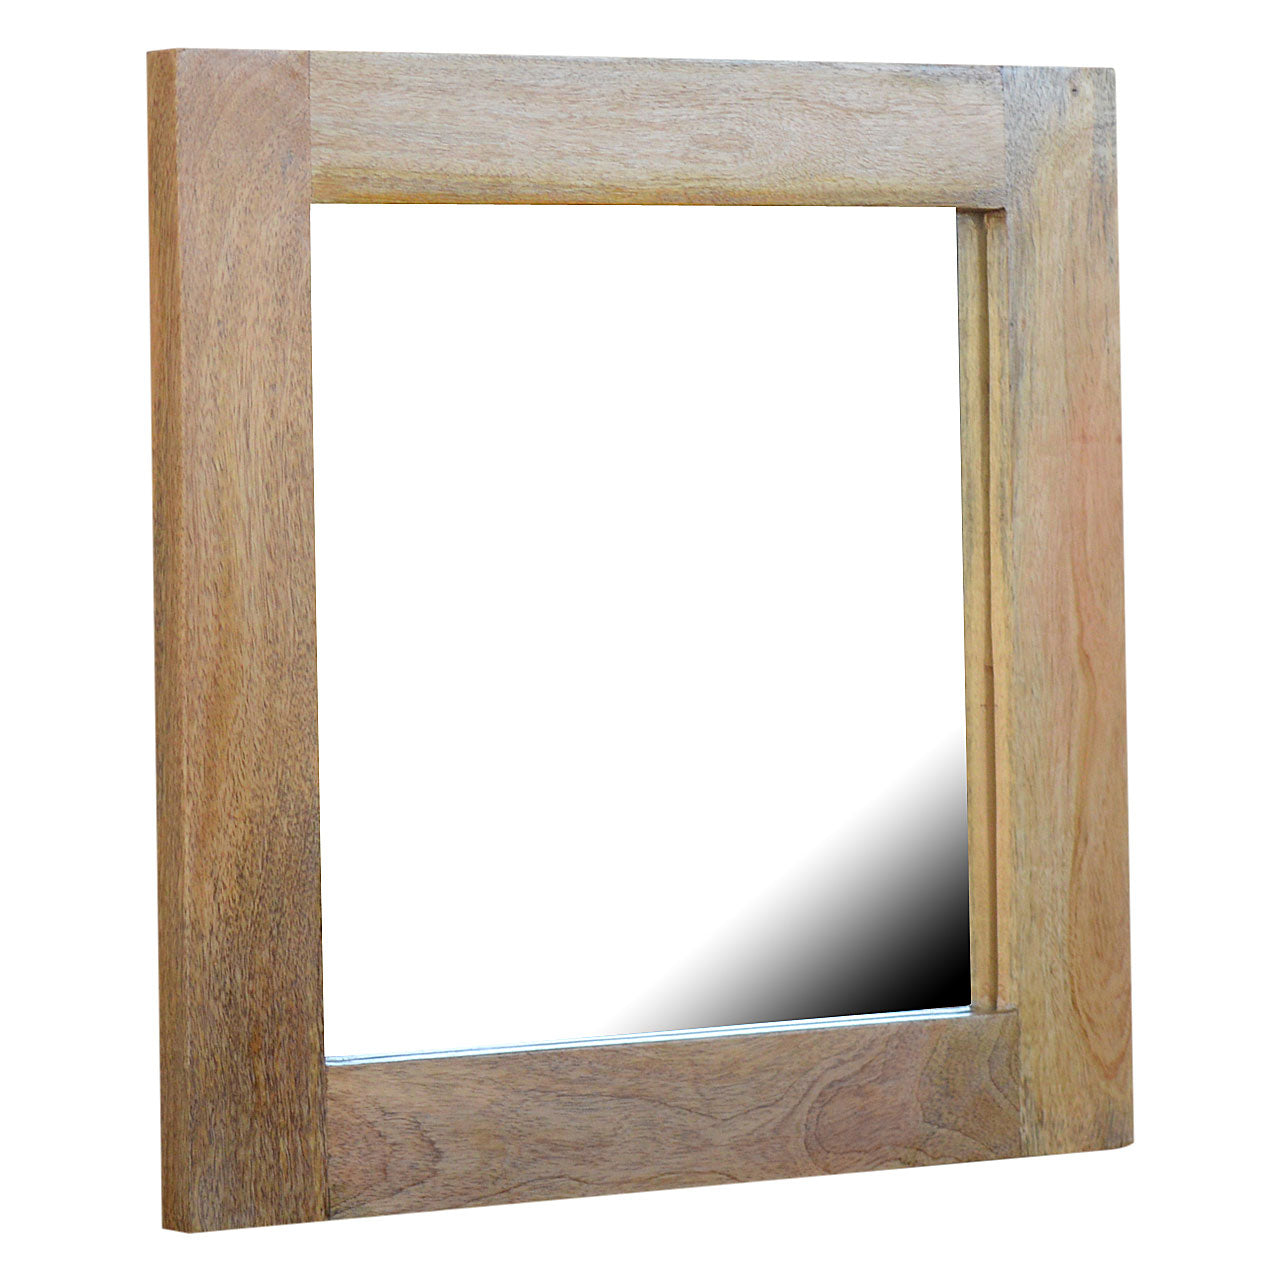 Rustic Square Framed Wall Mirror 45x45x5cm